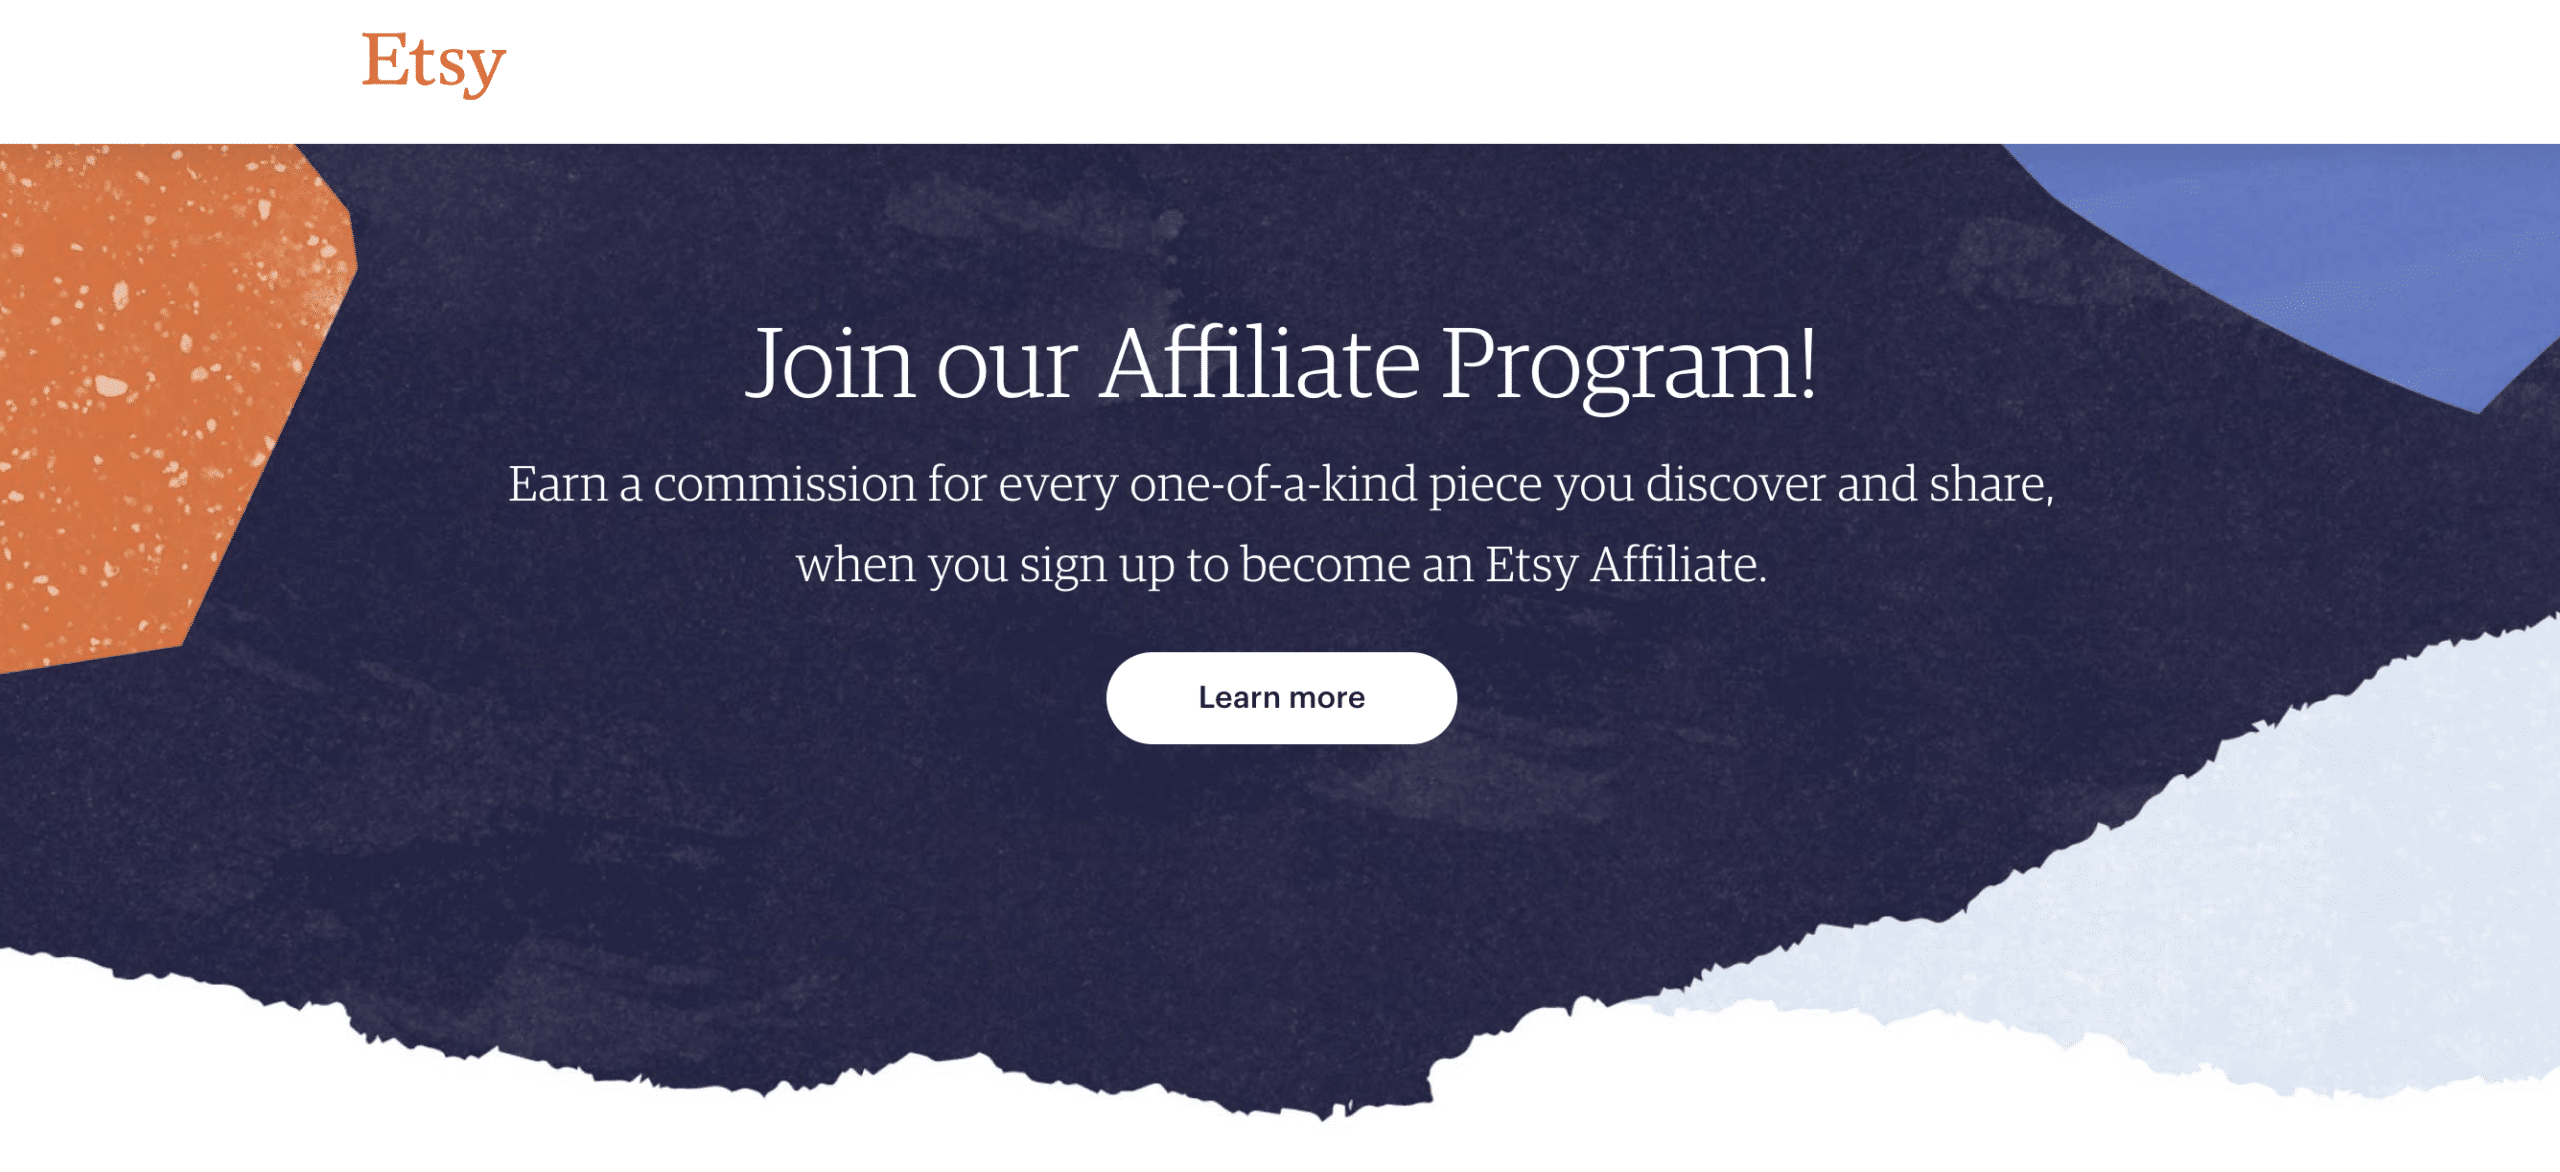 etsy affiliate program homepage